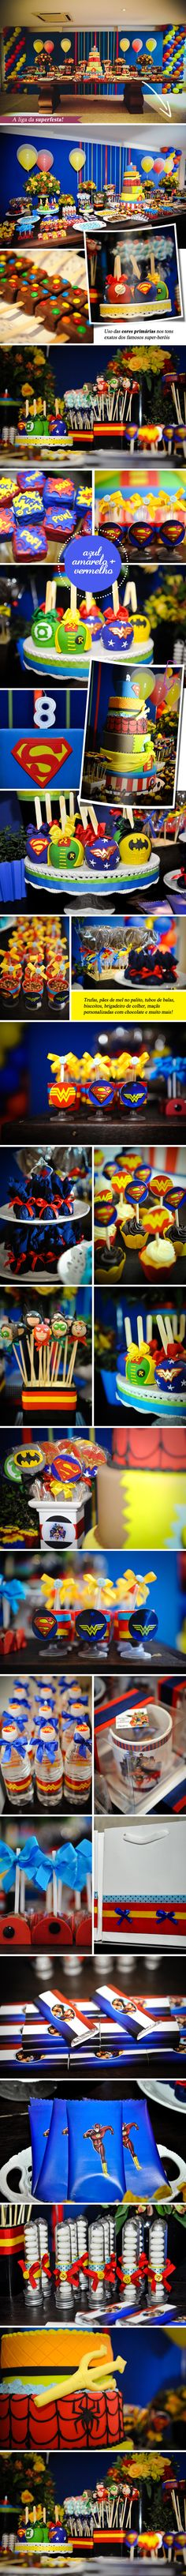 Great designs-check out the superhero cake pops! Avengers Birthday, Superhero Birthday Party, 4th Birthday Parties, Boy Birthday, Birthday Ideas, Marvel Baby Shower, Superhero Baby Shower, Wonder Woman Party, Batman Party